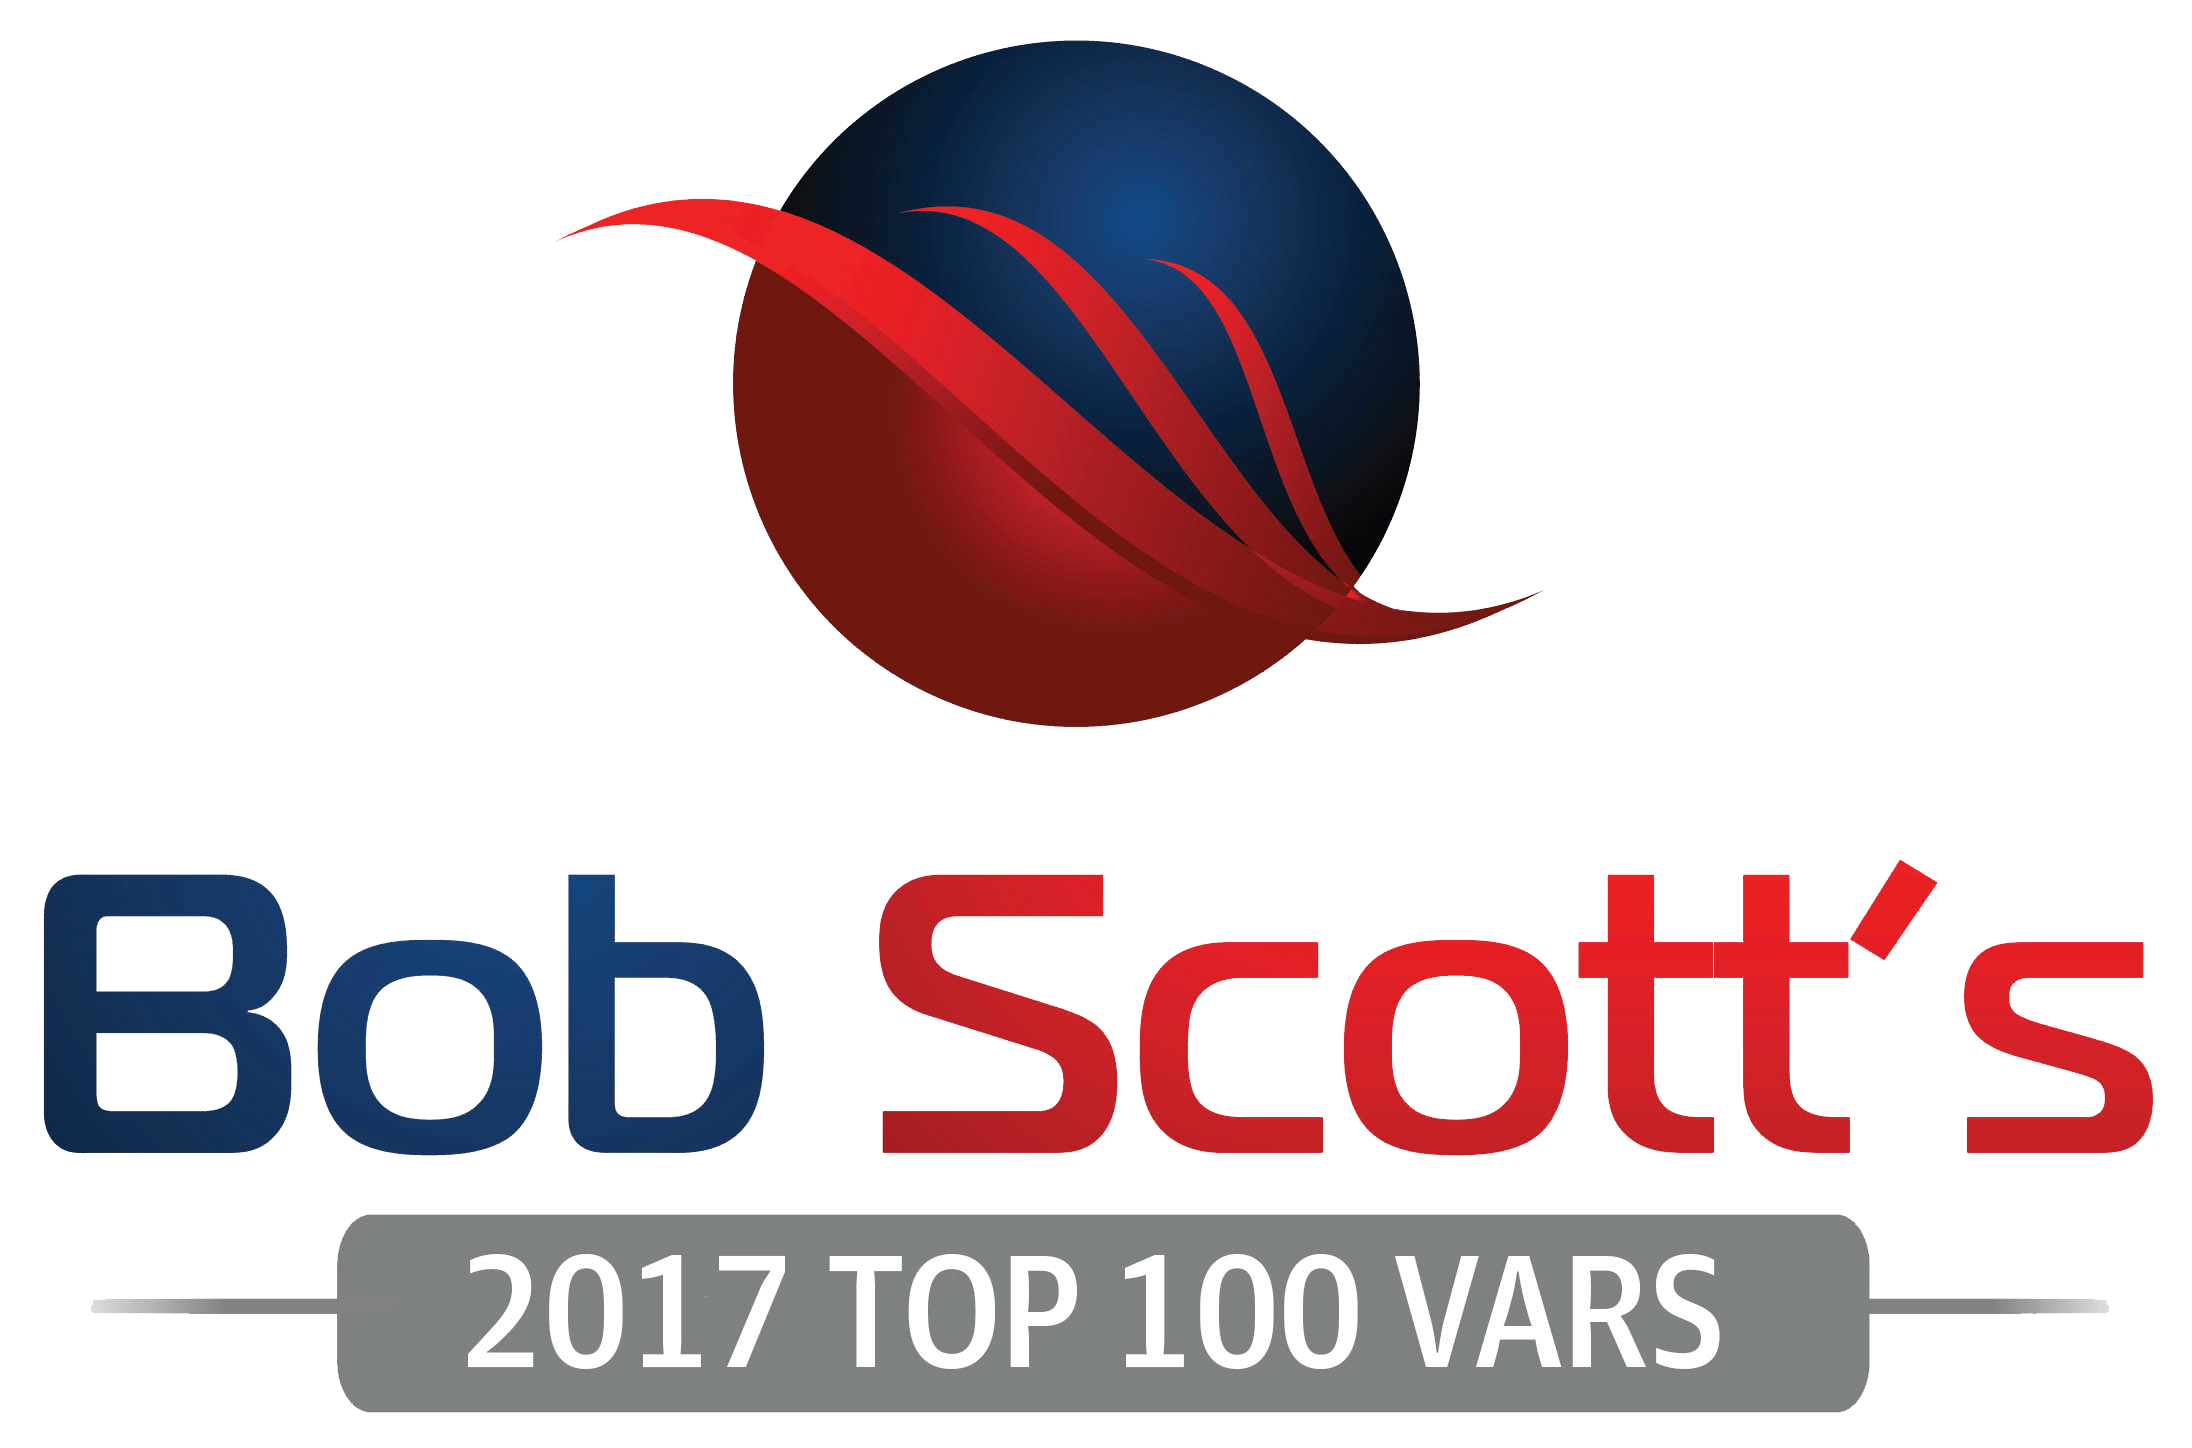 2017 Bob Scott's Top 100 VARS logo